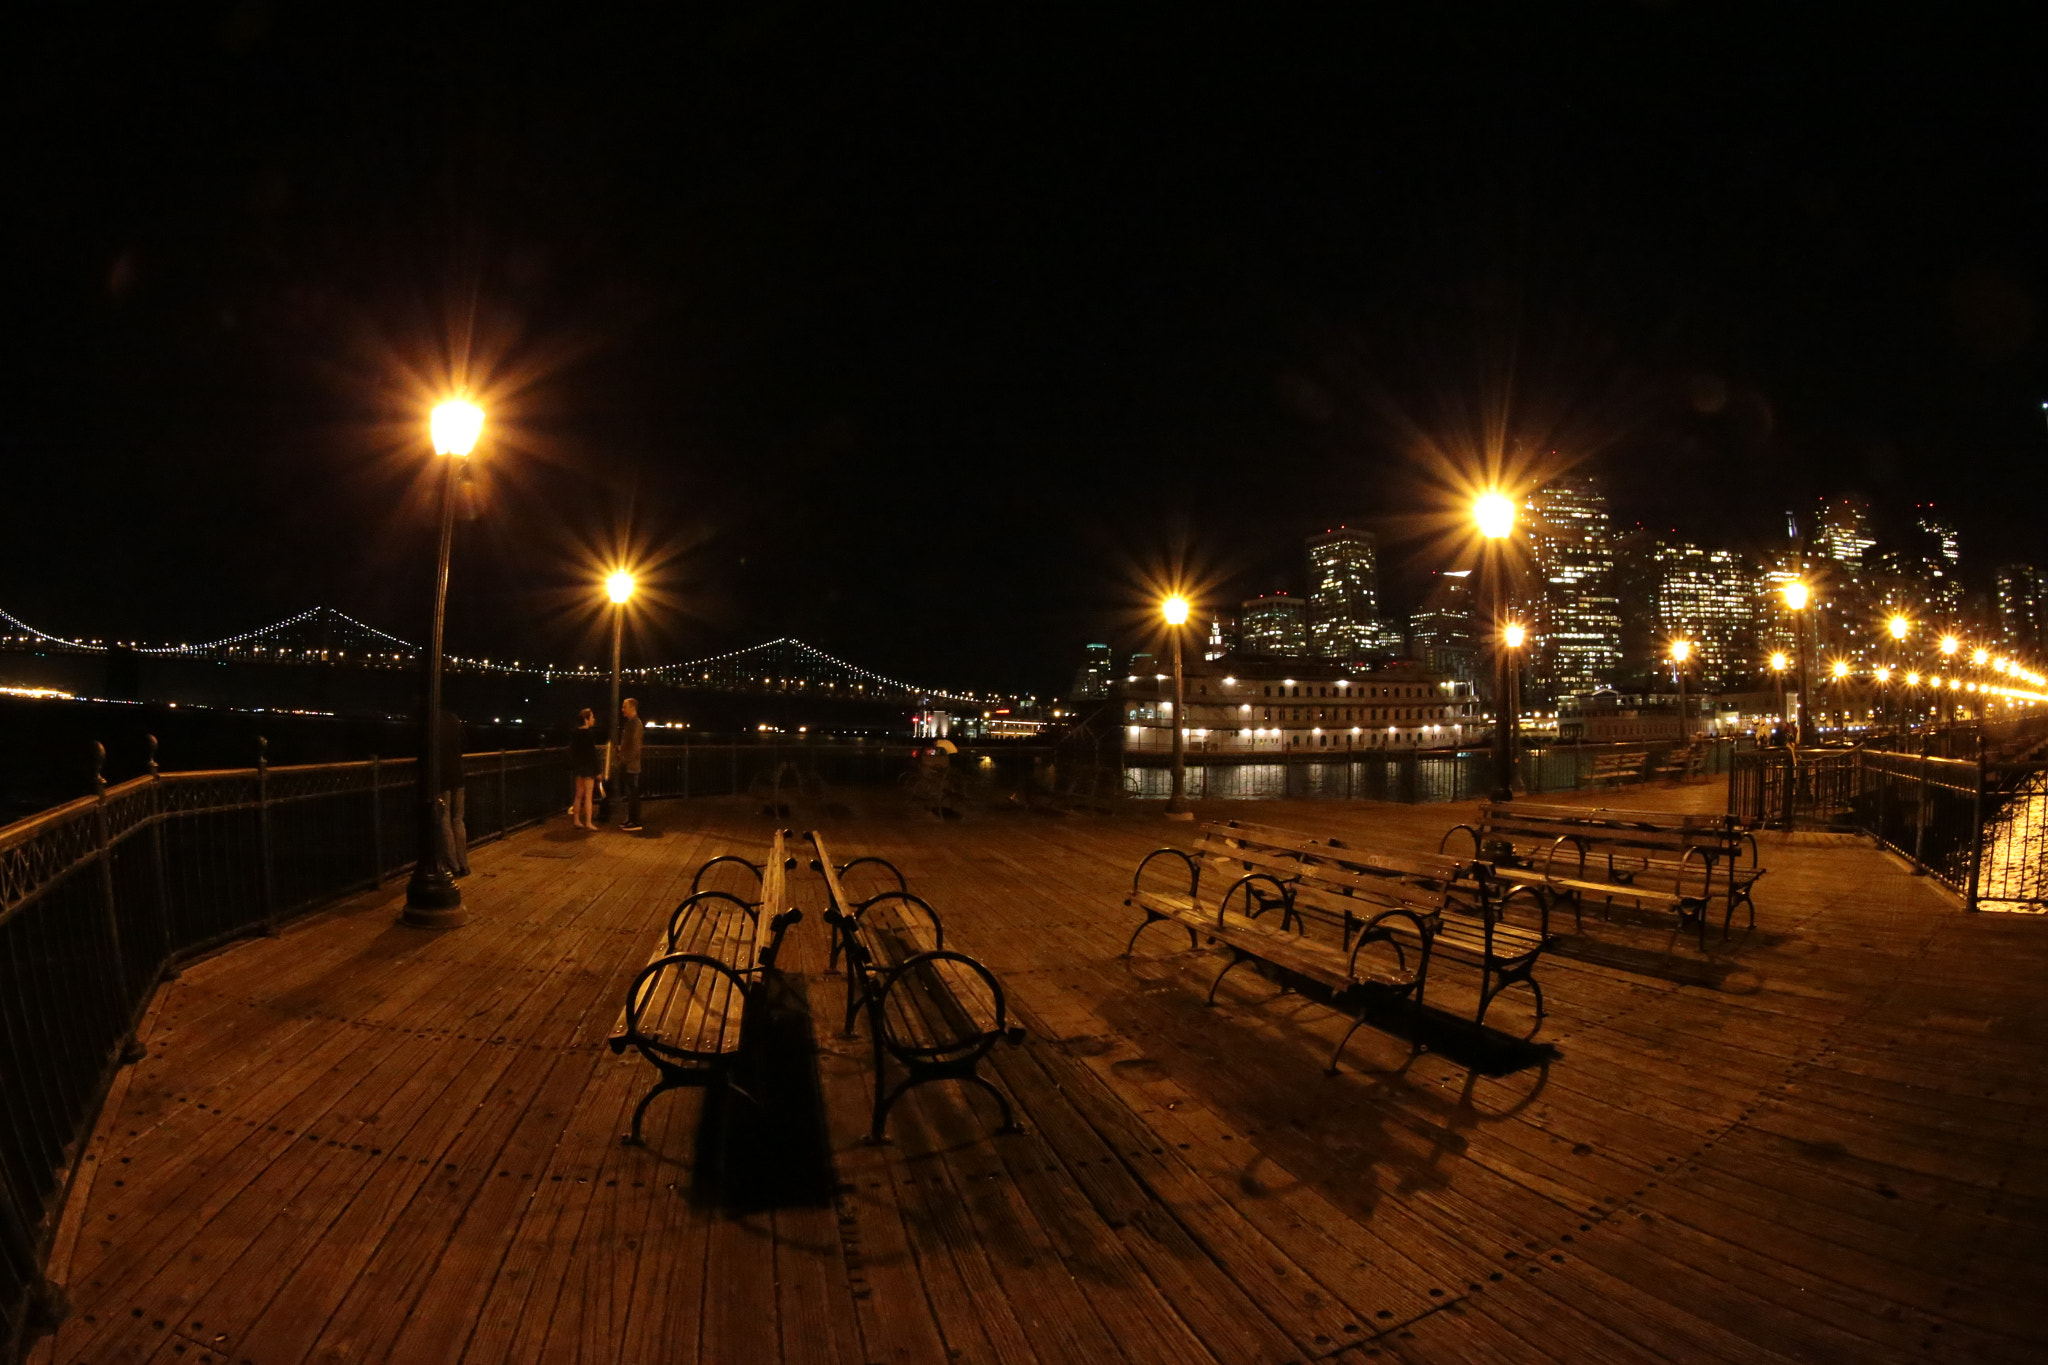 Photograph Summer Night in San Francisco  by Leonidas EL-Guapo on 500px